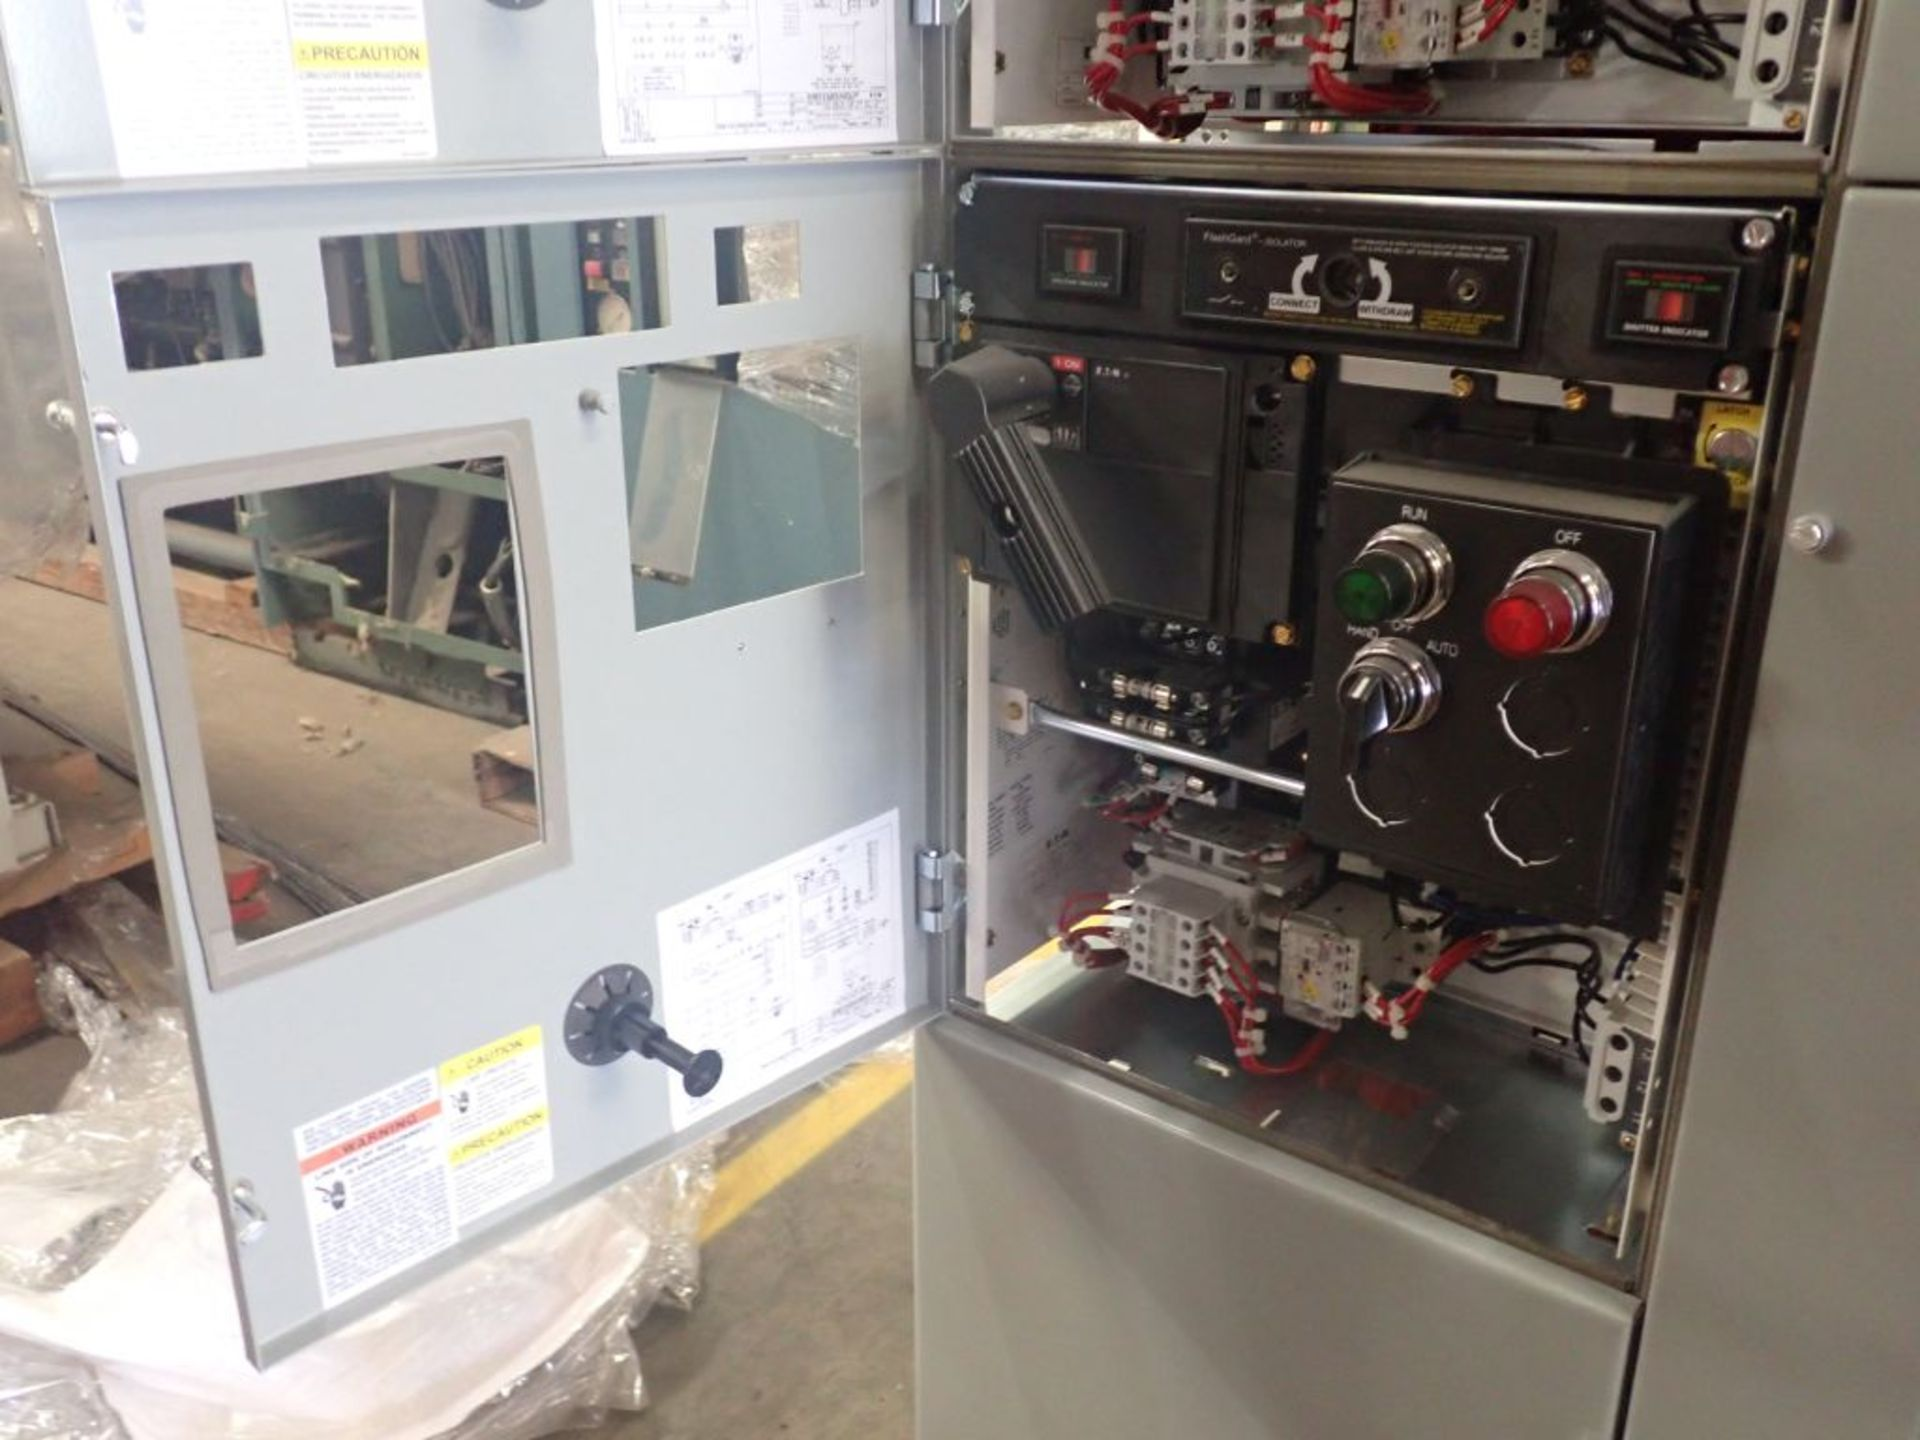 Eaton Freedom 2100 Series Motor Control Center   (2) F206-15A-10HP; (1) F206-30A-10HP; (1) FDRB- - Image 33 of 61